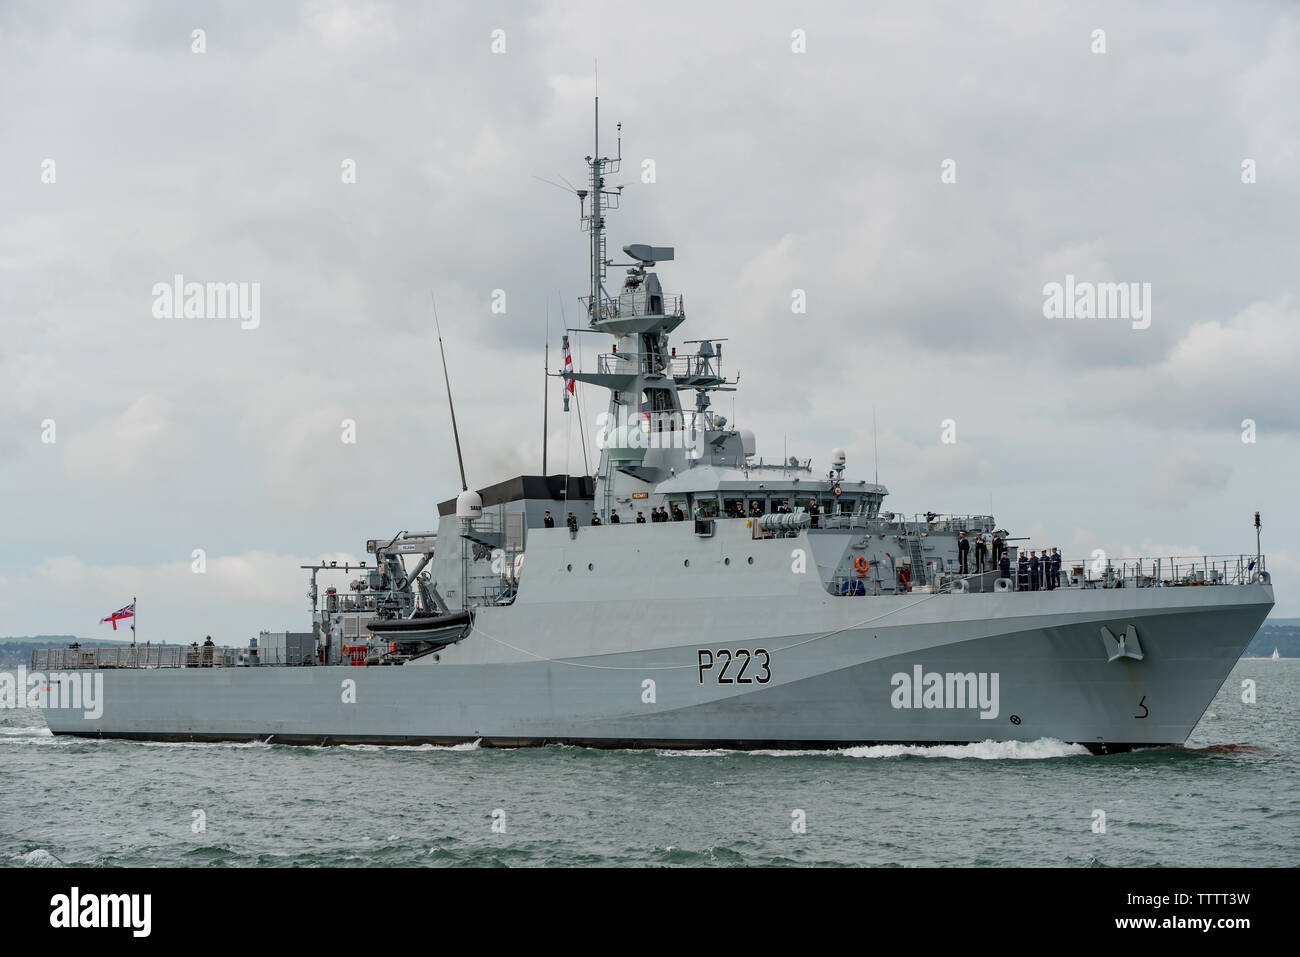 Royal Navy offshore patrol vessel HMS Medway arriving on 17/6/19 at it's base port of Portsmouth, UK after acceptance by the navy from BAE Systems. - Stock Image